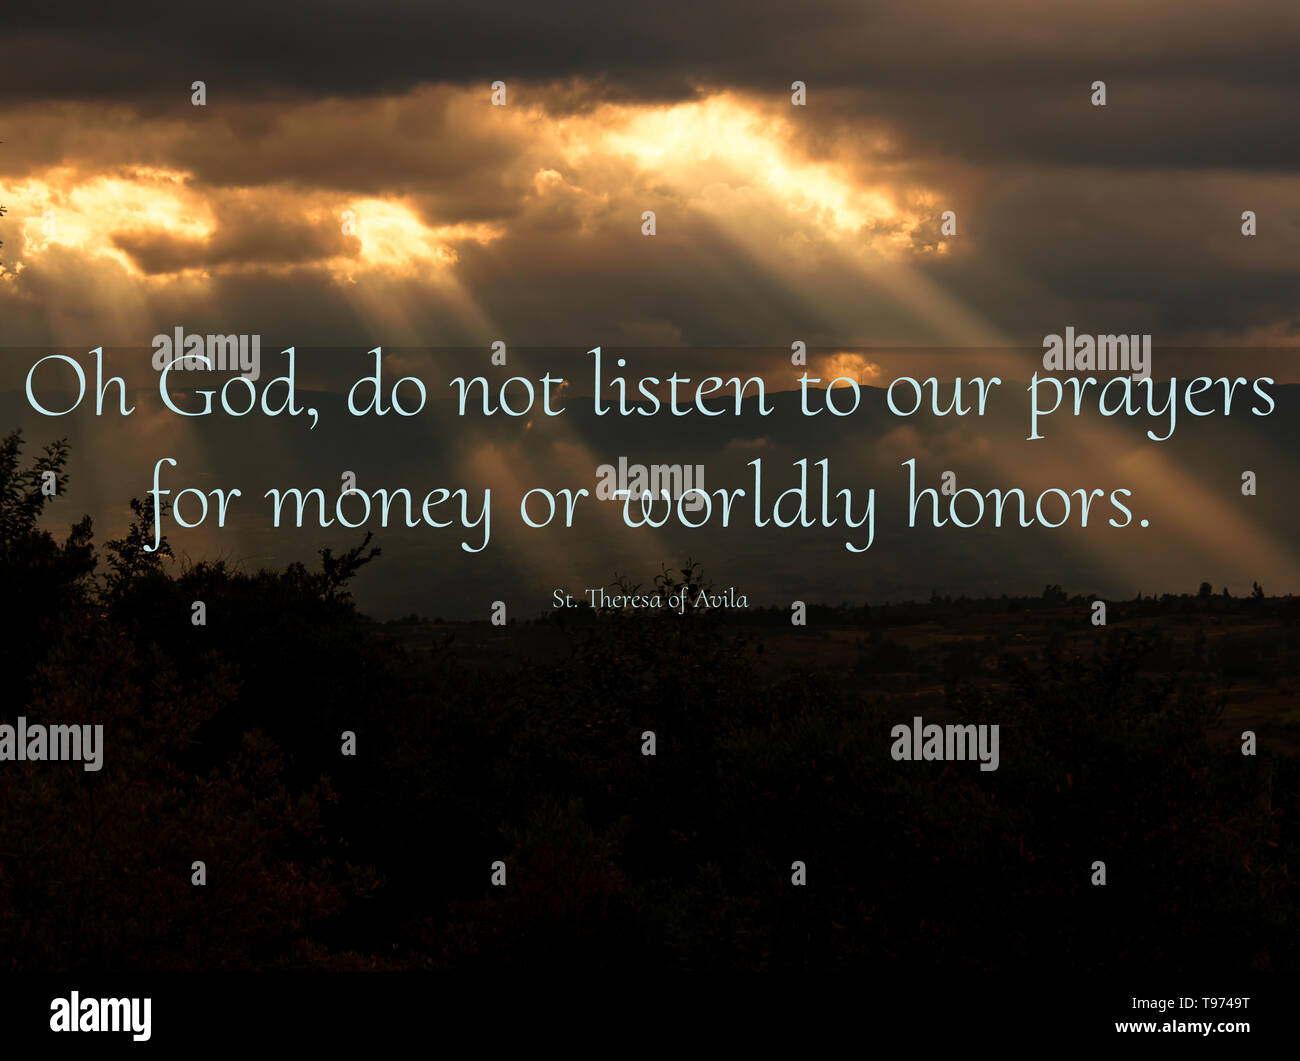 Deep and inspirational christian and catholic quotes and teachings from saints over beautiful images of God's creation. Stock Photo